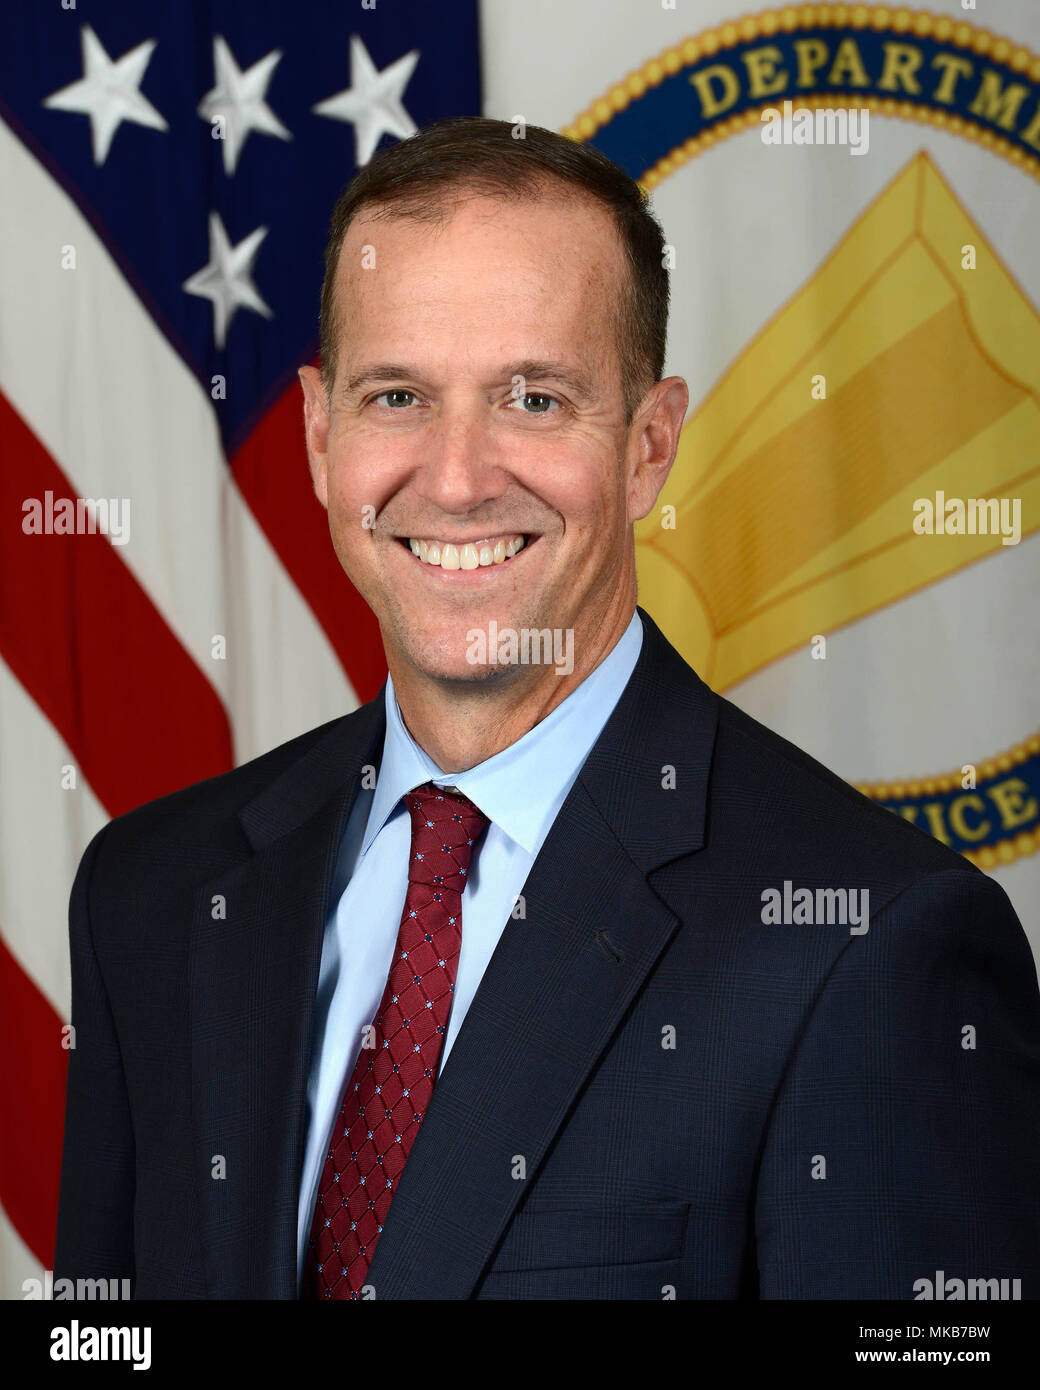 Michael E. Reheuser, Assistant G1 for Army Civilian Personnel Policy, poses for his official portrait in the Army portrait studio at the Pentagon in Arlington, Va., Nov., 22, 2017.  (U.S. Army photo by Monica King) - Stock Image